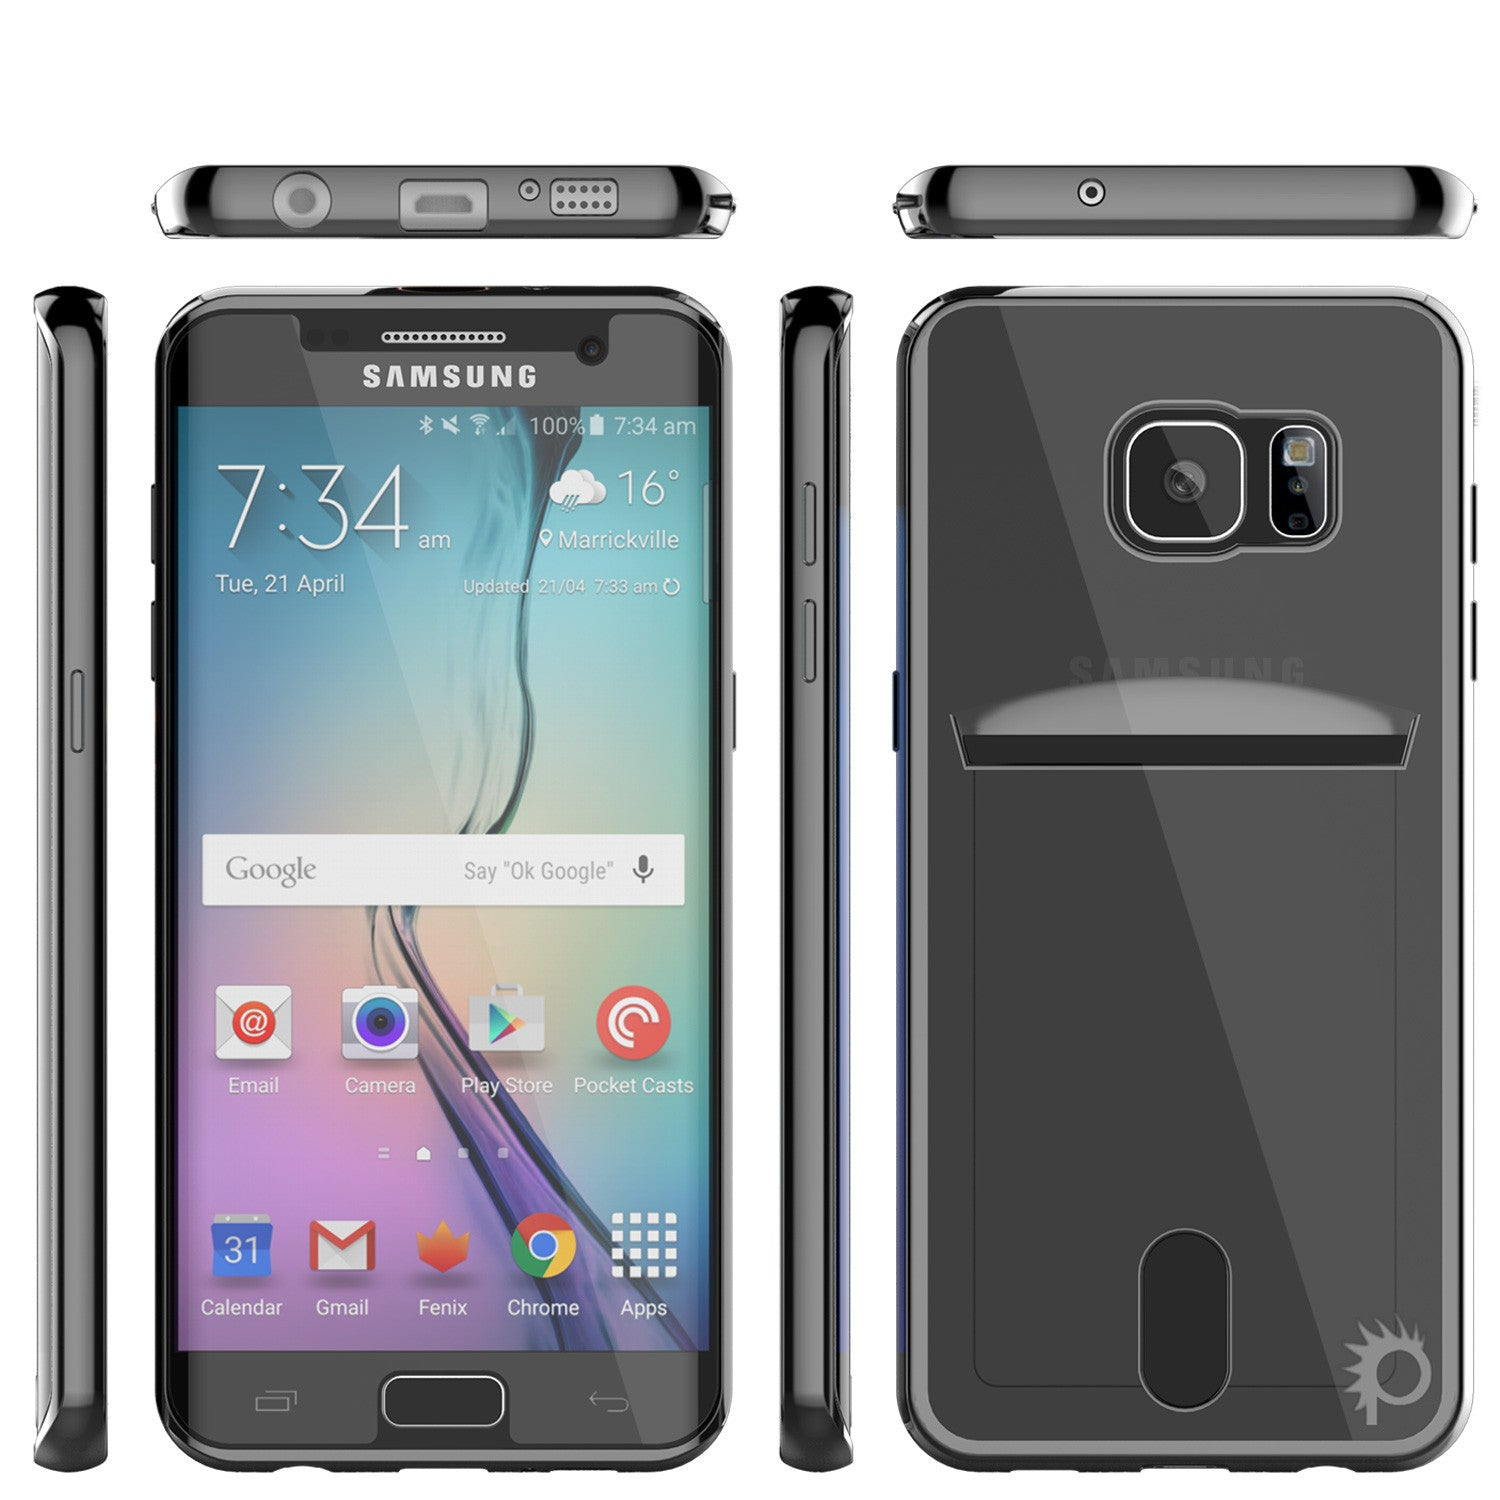 Galaxy S6 Case, PUNKCASE® LUCID Black Series | Card Slot | SHIELD Screen Protector | Ultra fit